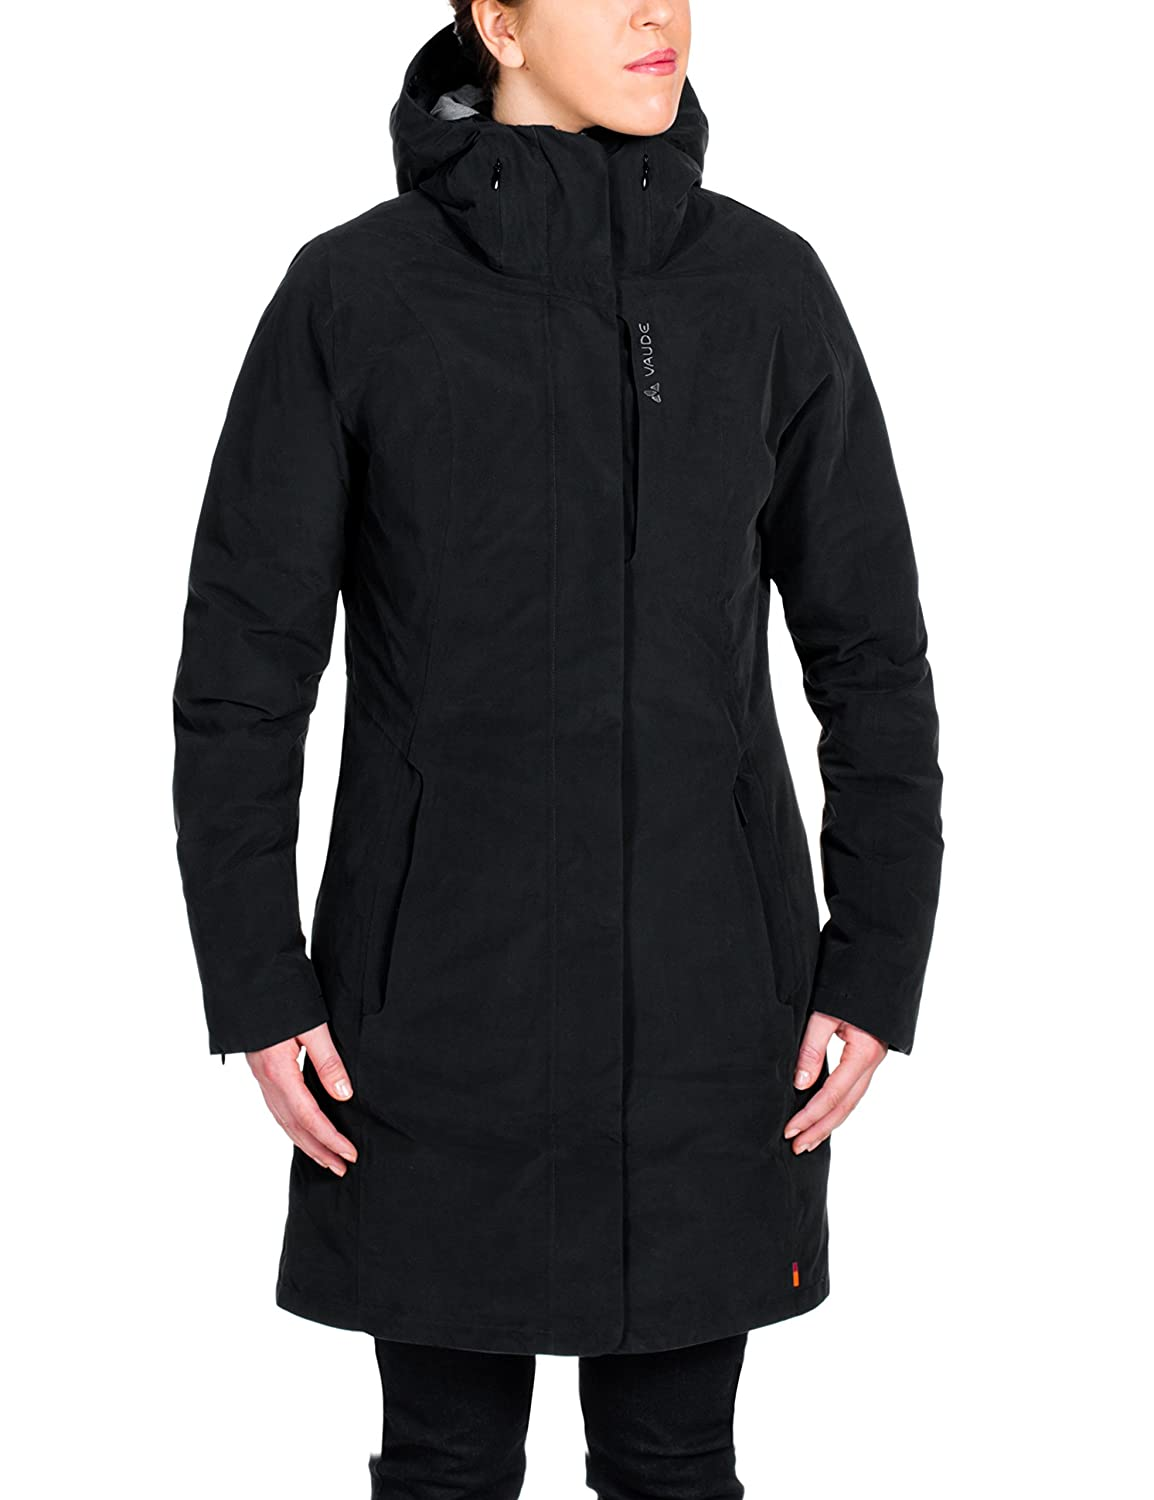 VAUDE Damen Doppeljacke Annecy 3-in-1 Coat, Black, 34, 05673